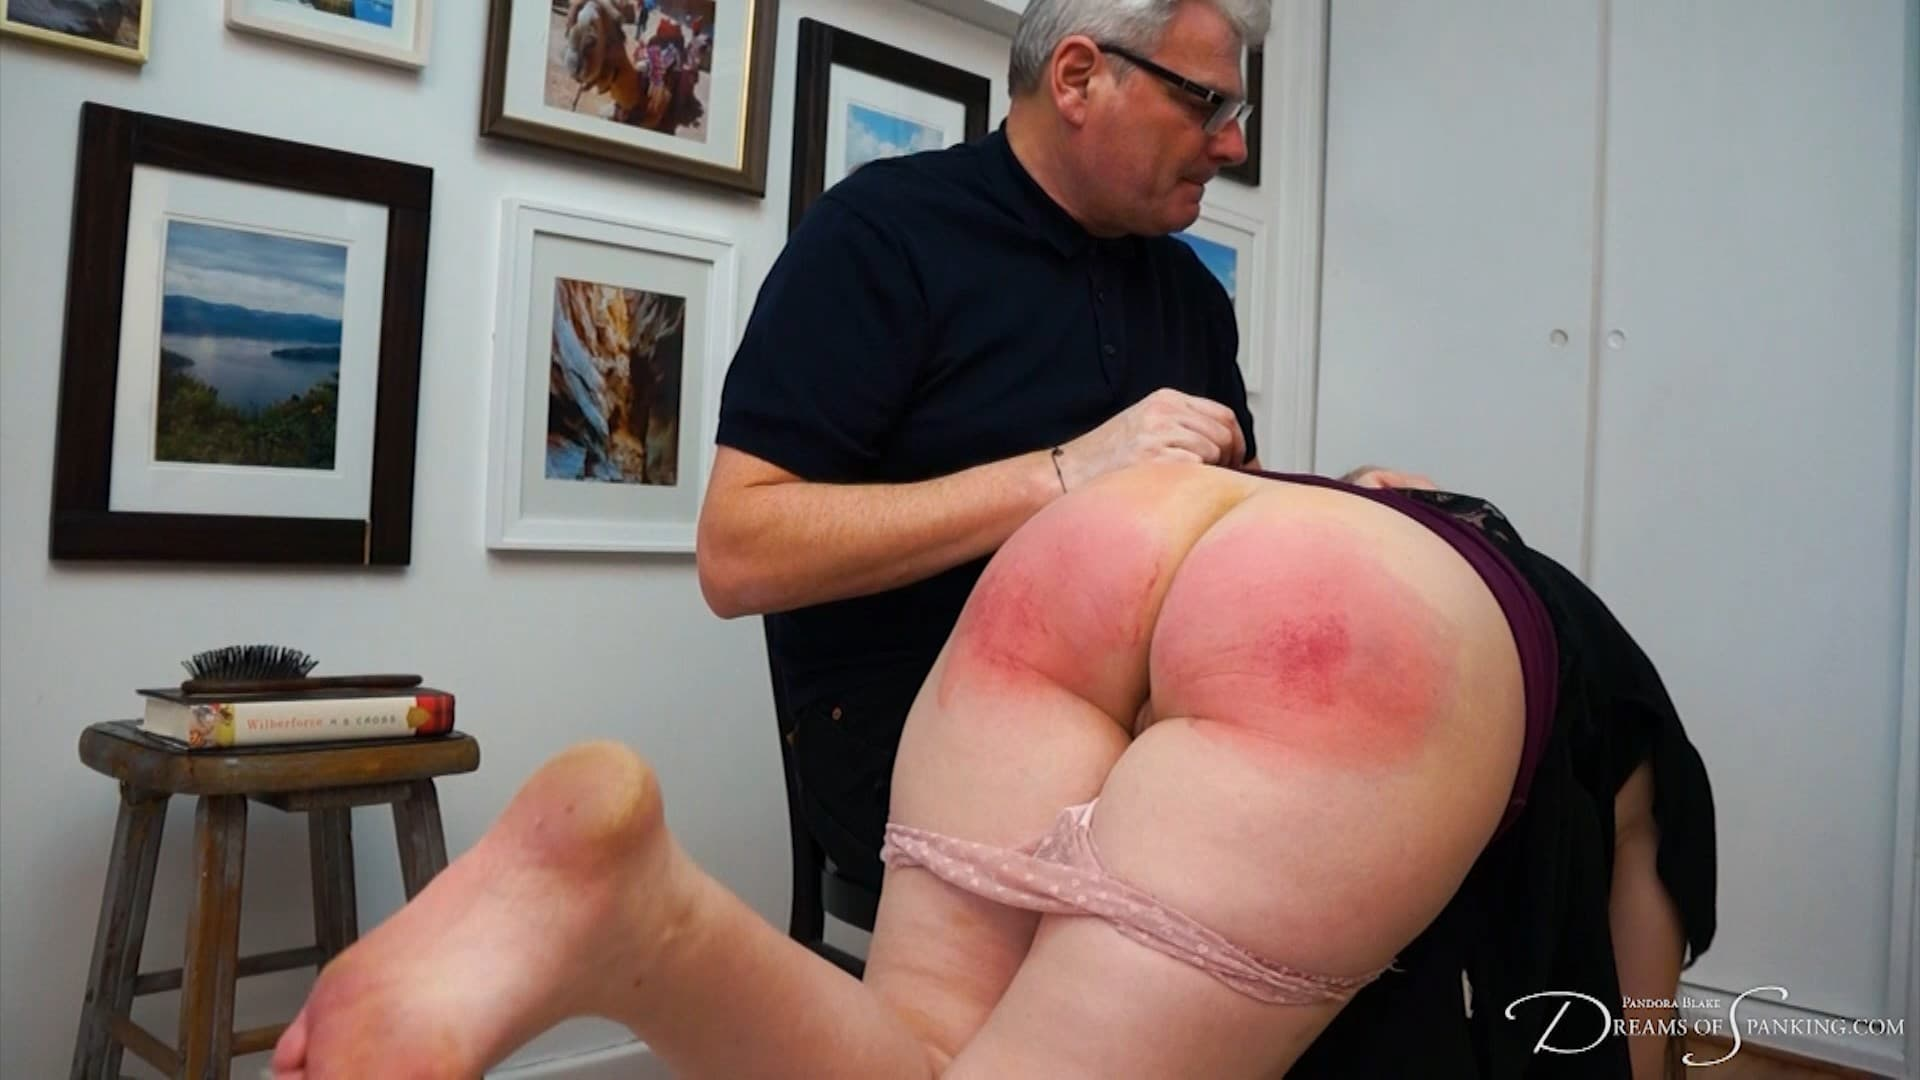 Dreams of Spanking – MP4/Full HD – Pandora Blake, Stephen Leiws – His Spanked Wife + Behind The Scene